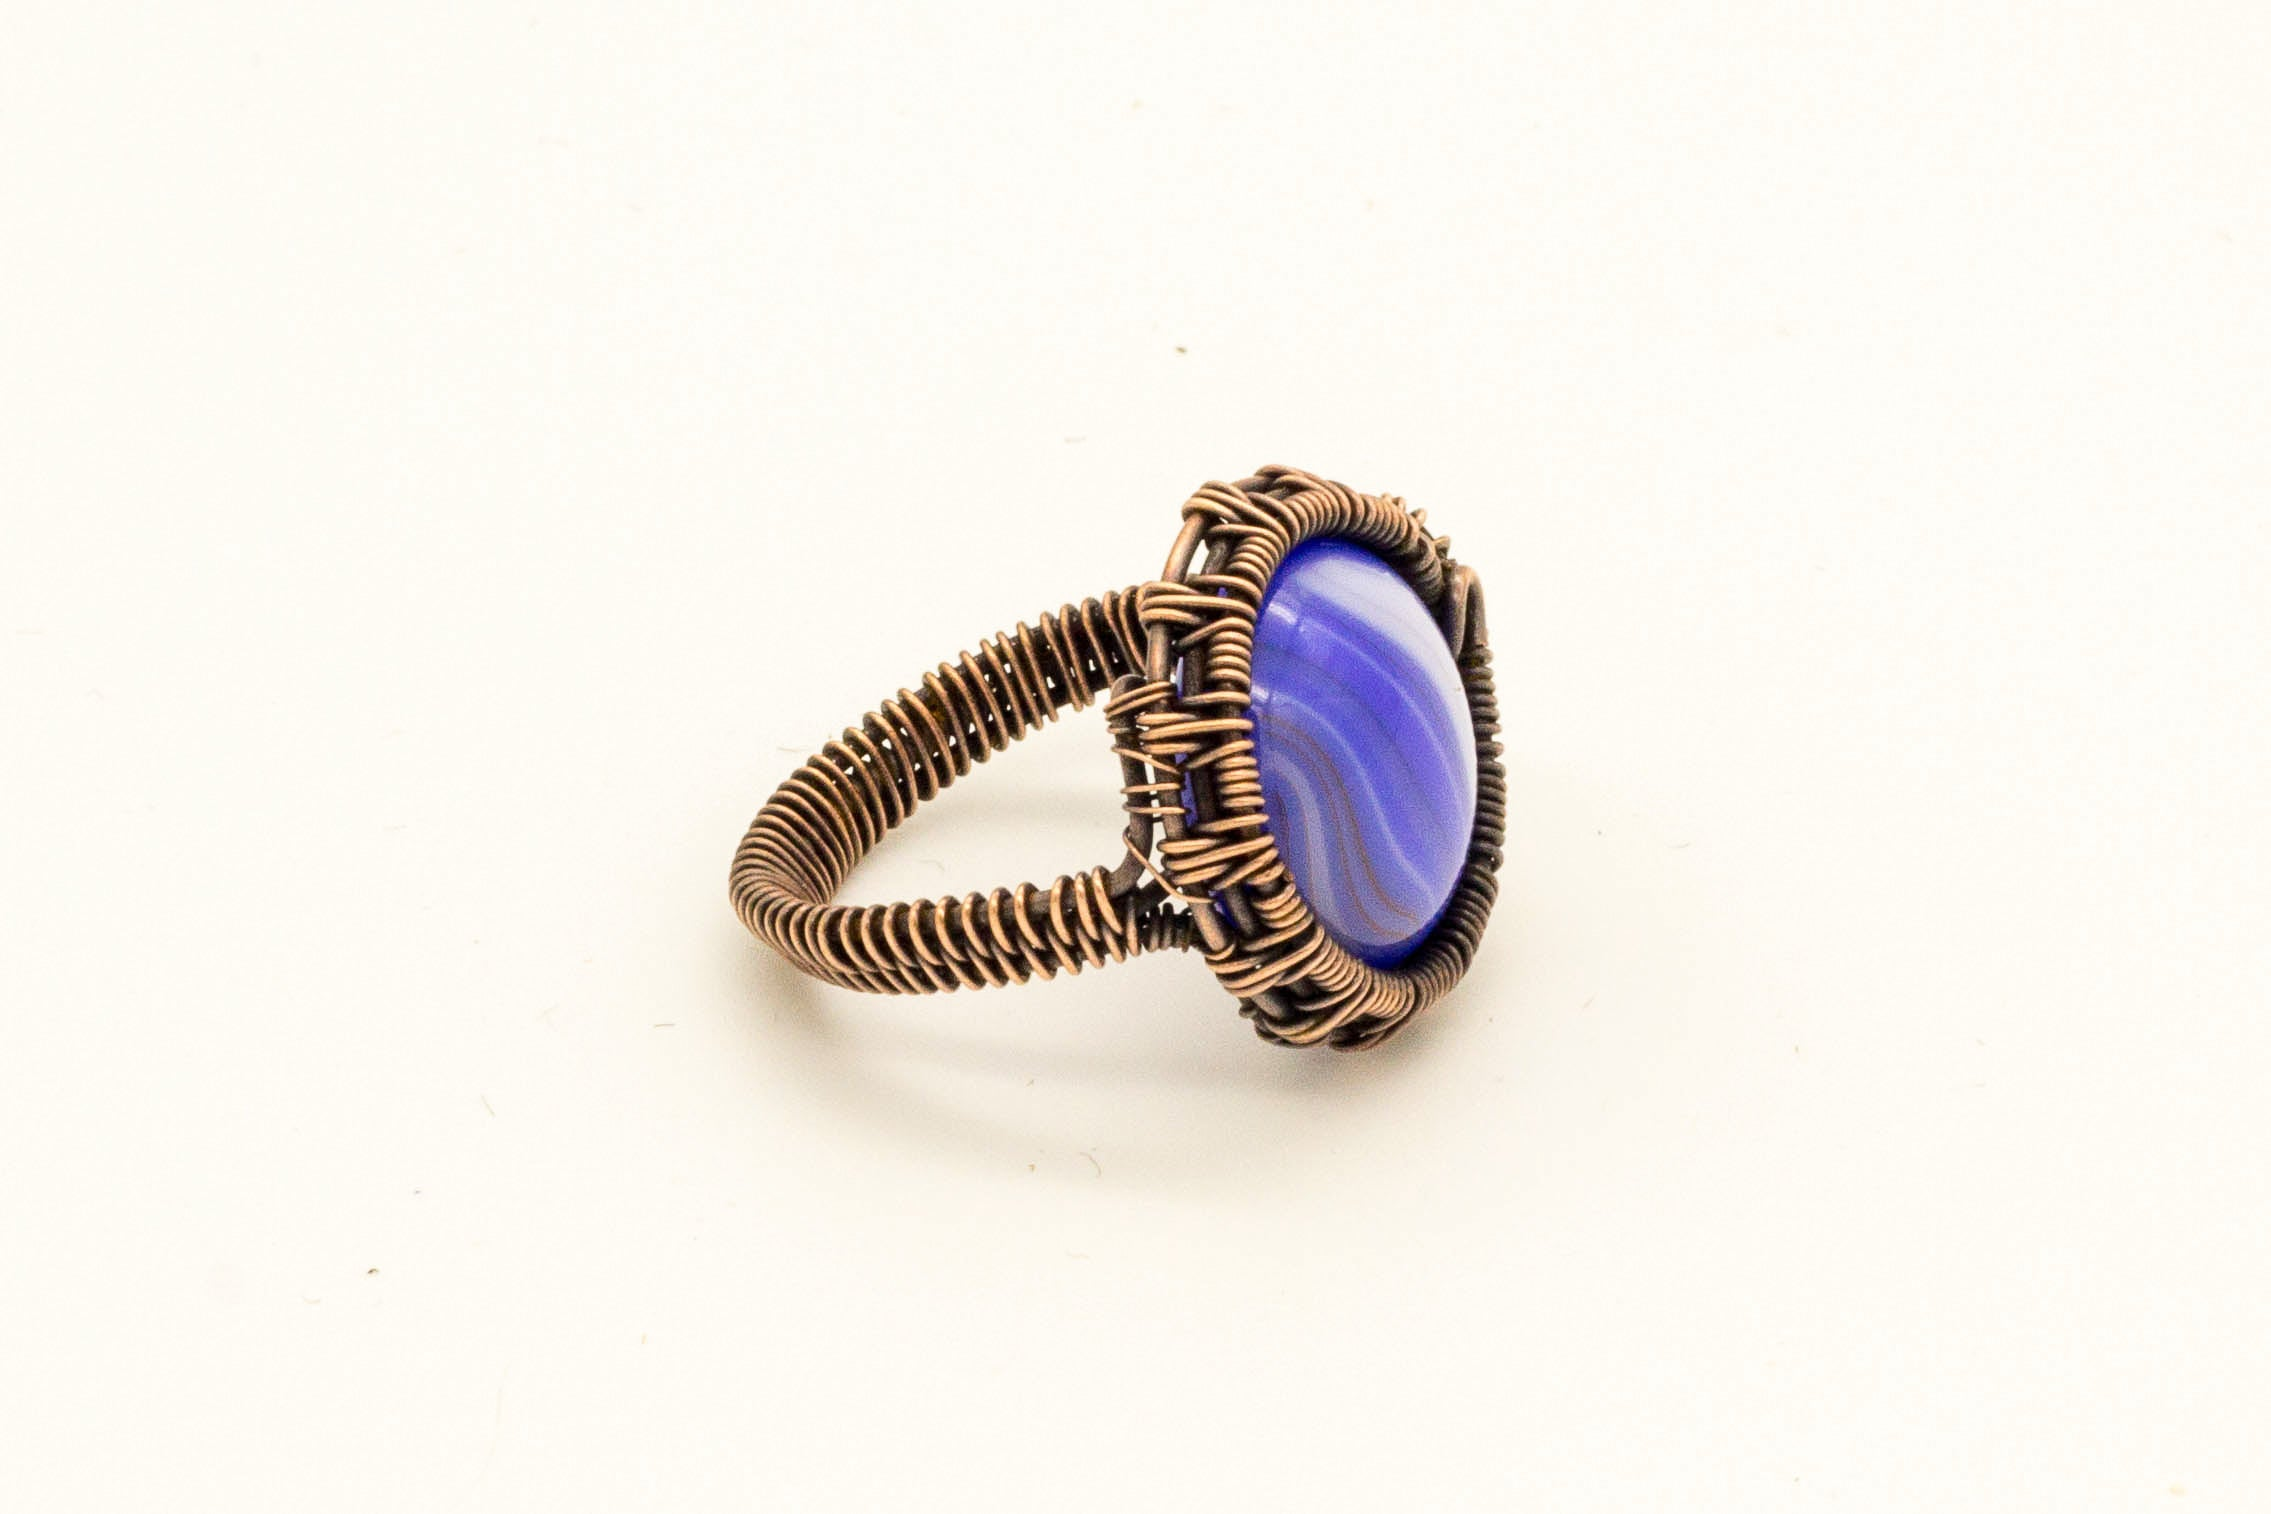 blue-streaked-fused-glass-copper-wire-wrapped-ring-nymph-in-the-woods-jewelry